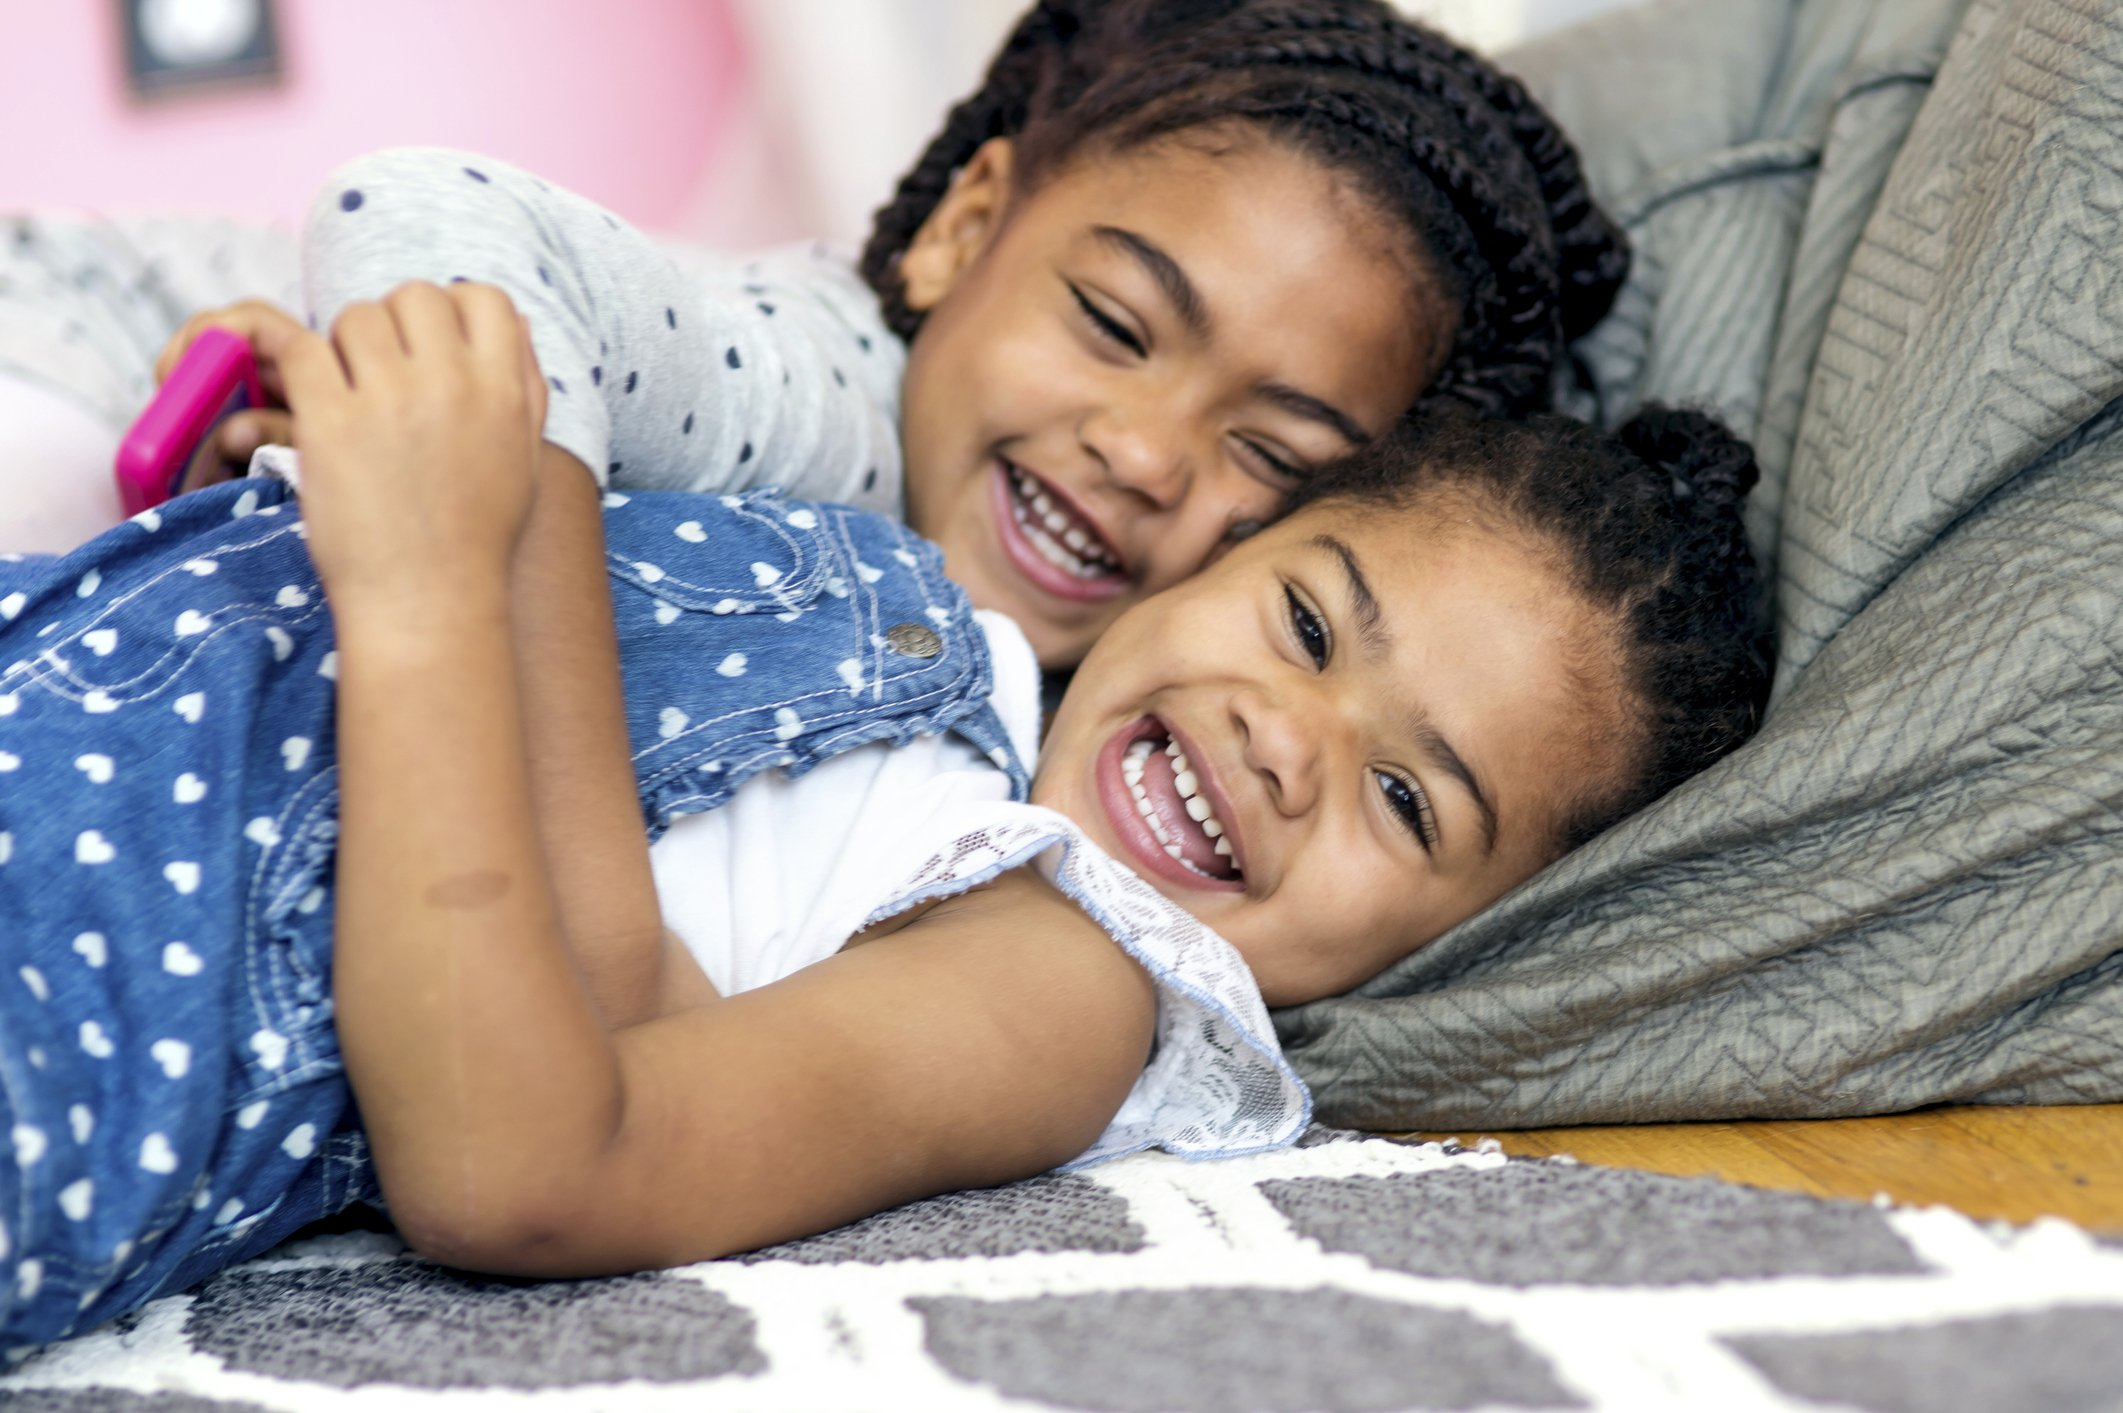 Cute African American girl tickling younger sister on the floor | Photo: Getty Images